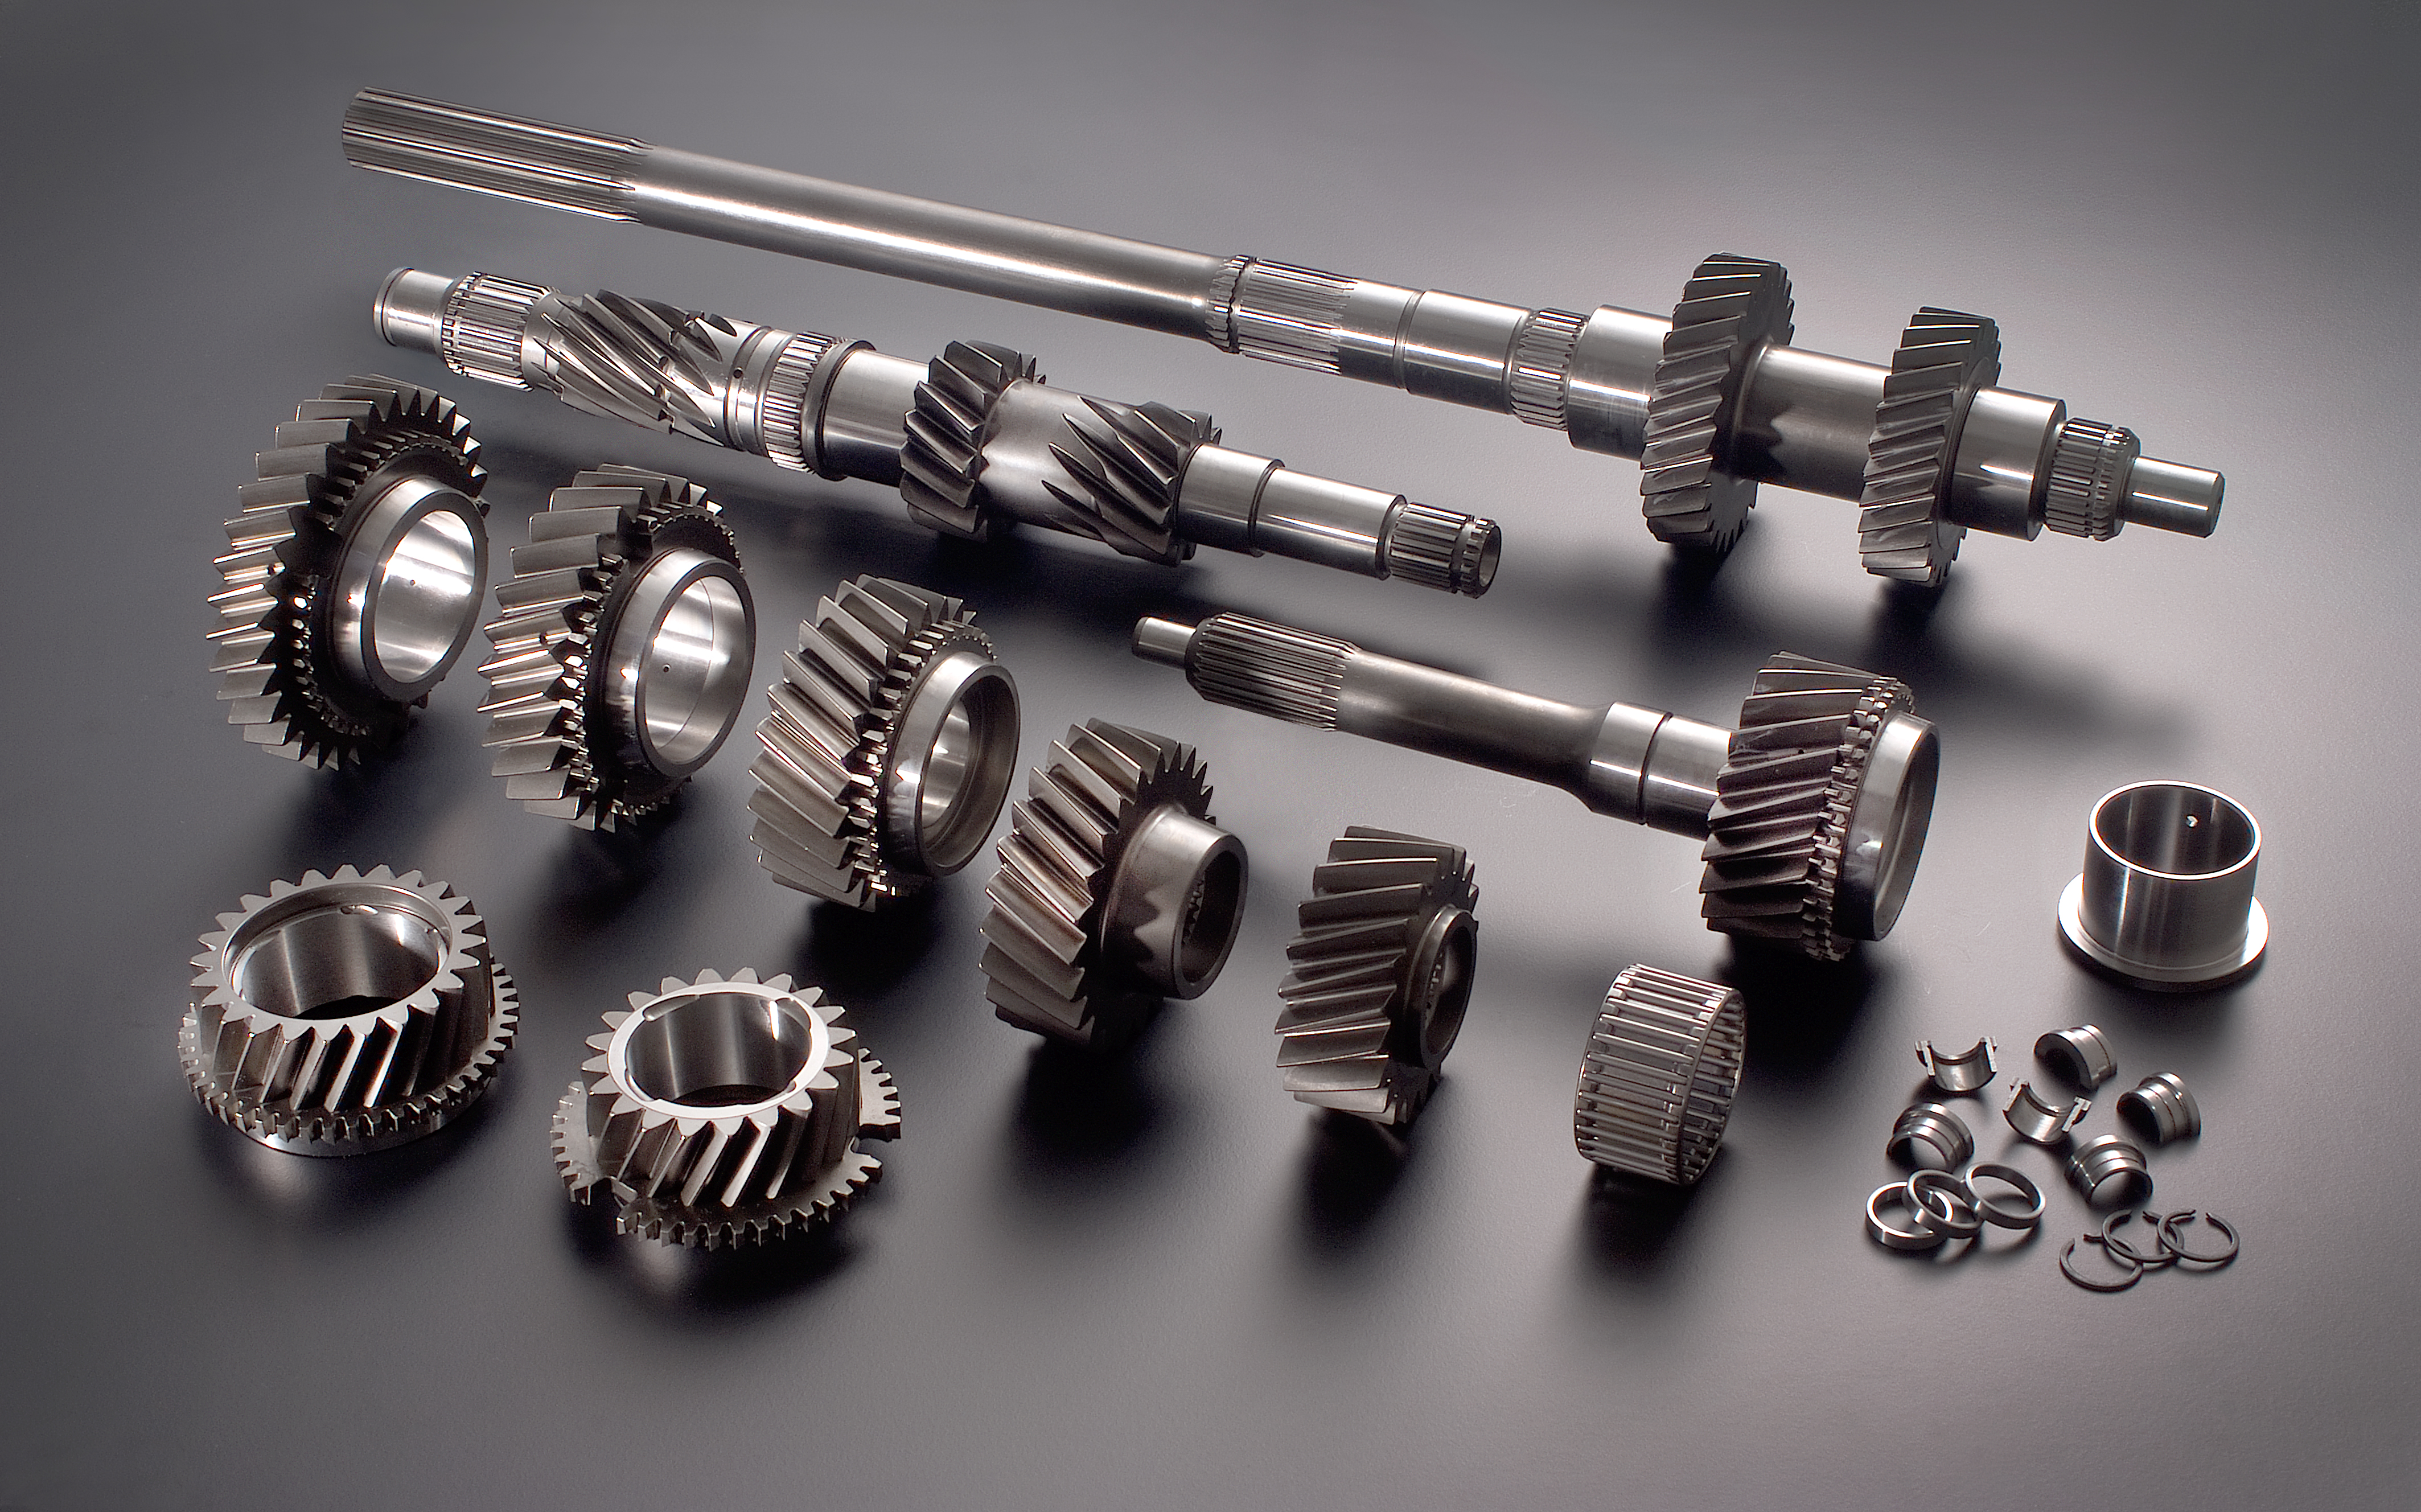 sequential gearbox knowledge, ppg, PPG, PFITZNER,T56, TREMEC,GT-R, R32